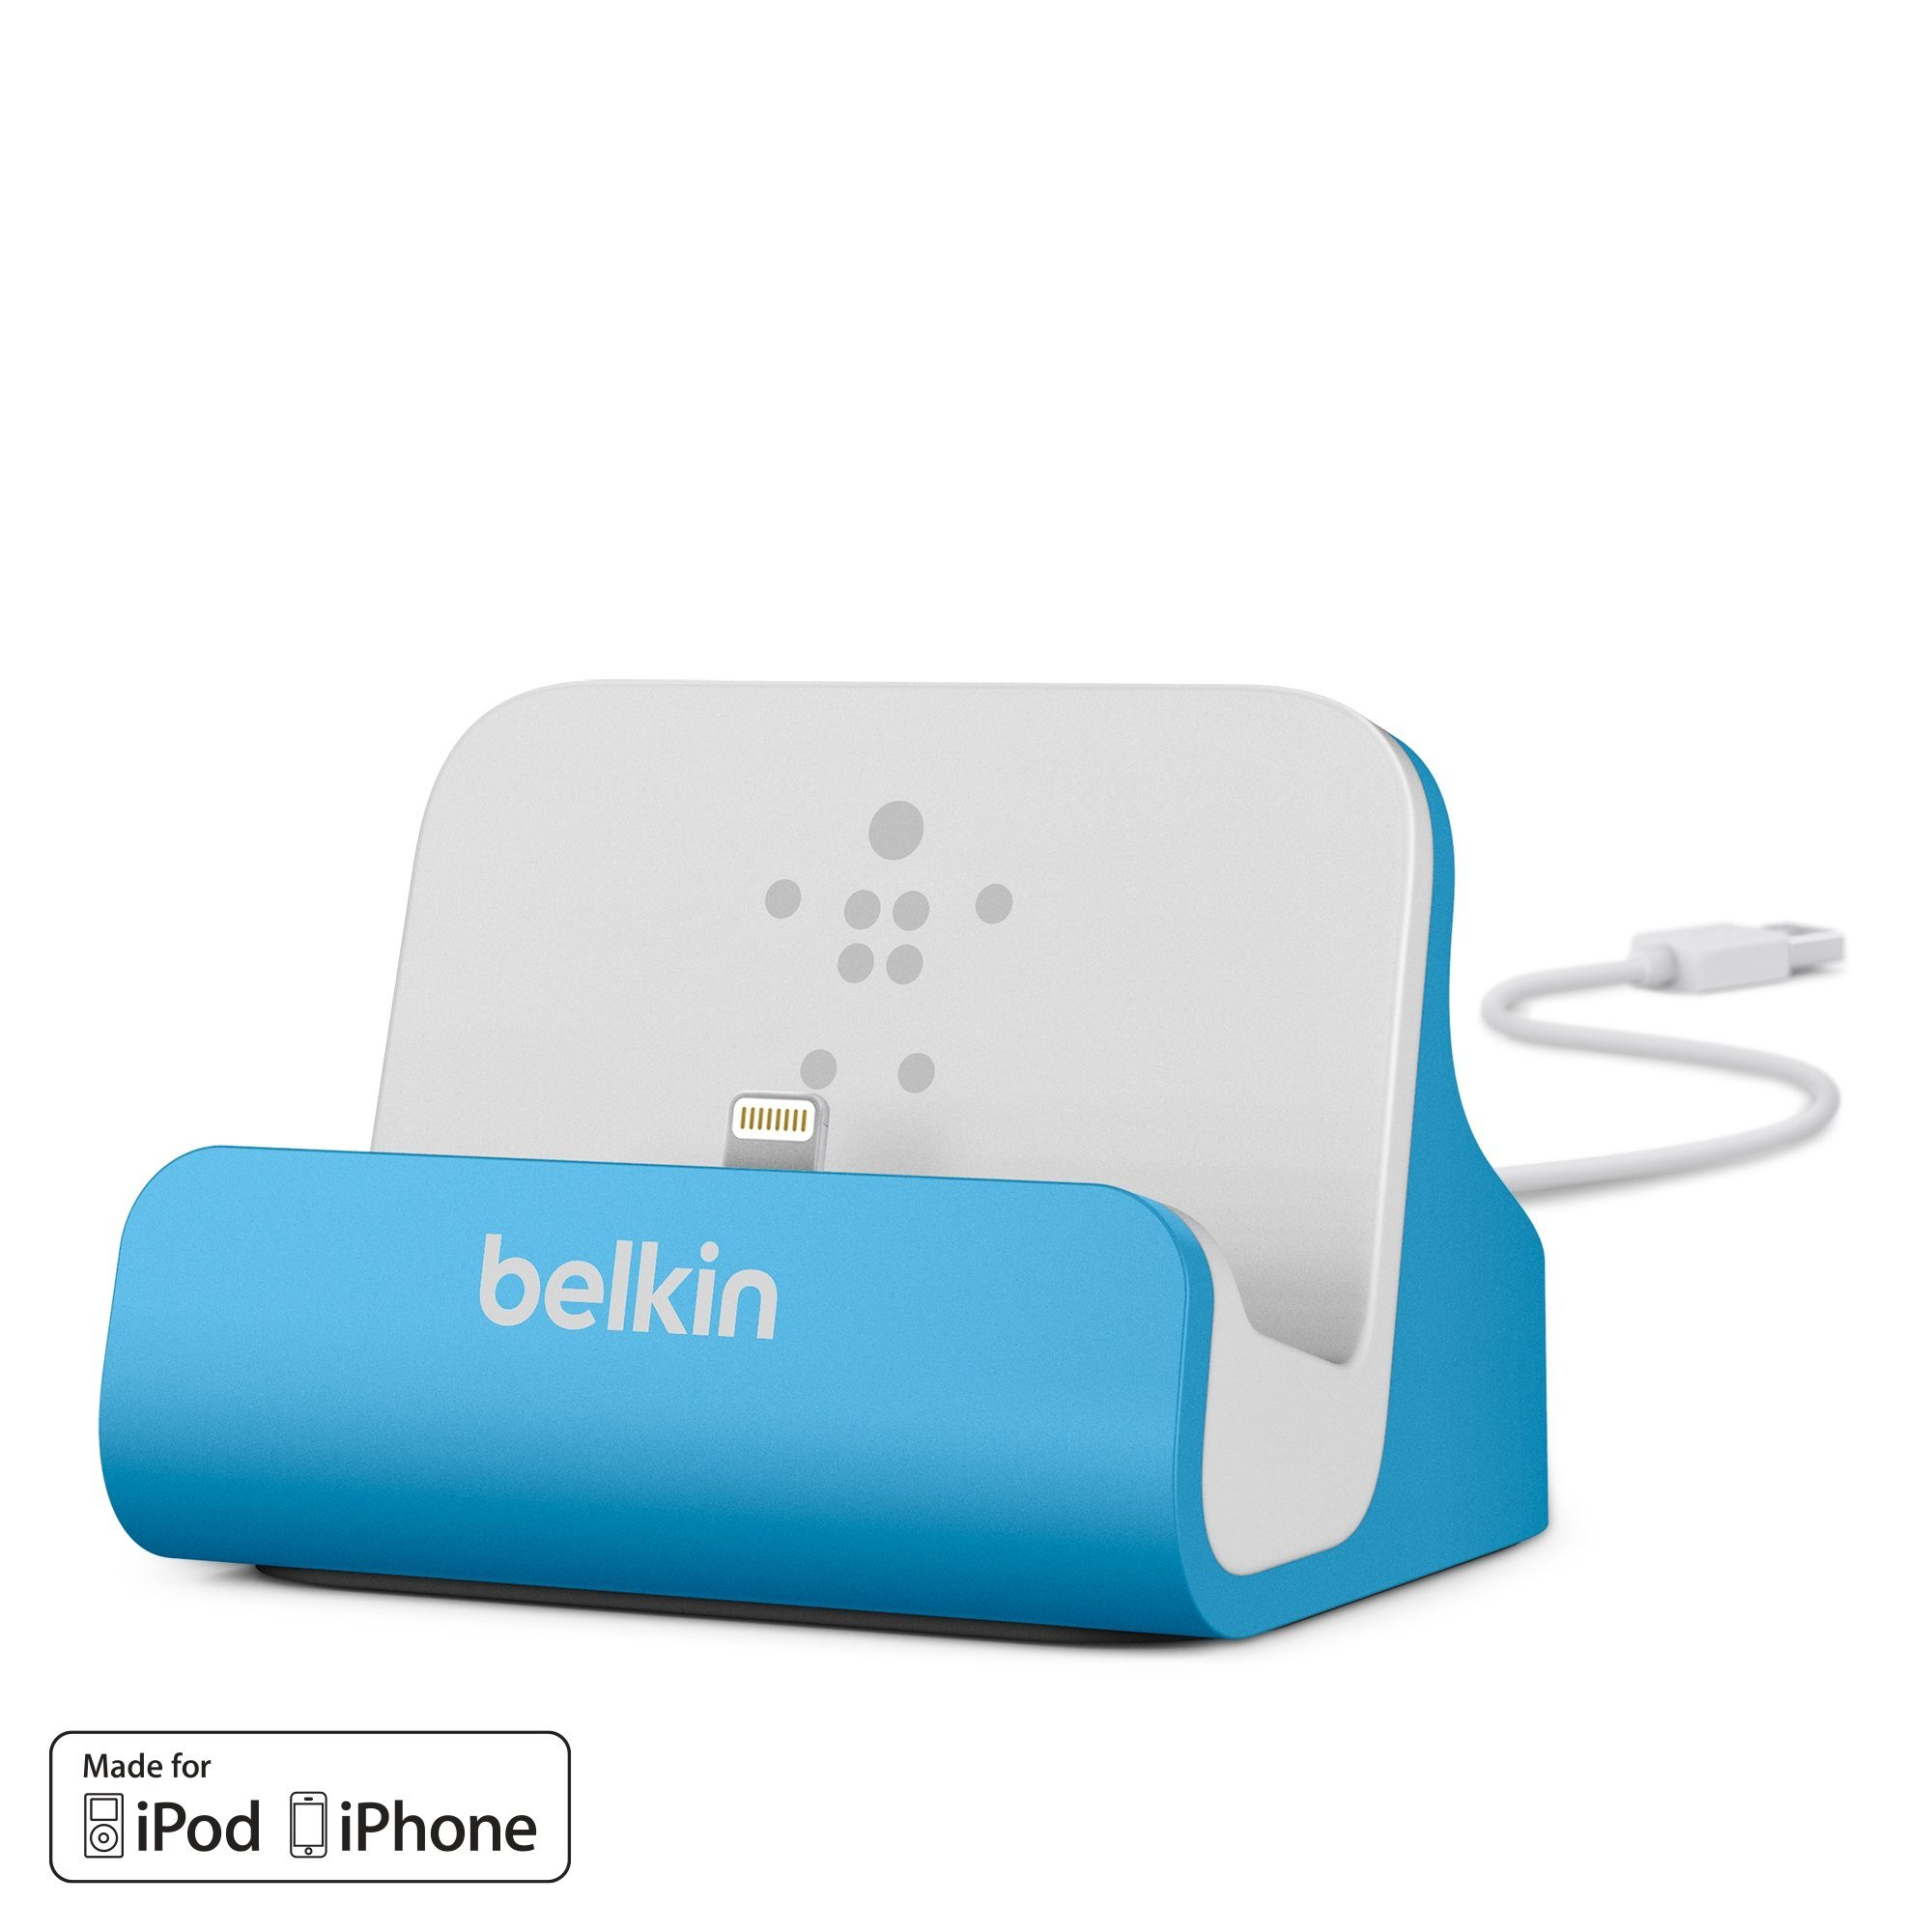 BELKIN Kabel & Adapter »Sync-/Lade-Dock für iPhone blau, weiss«